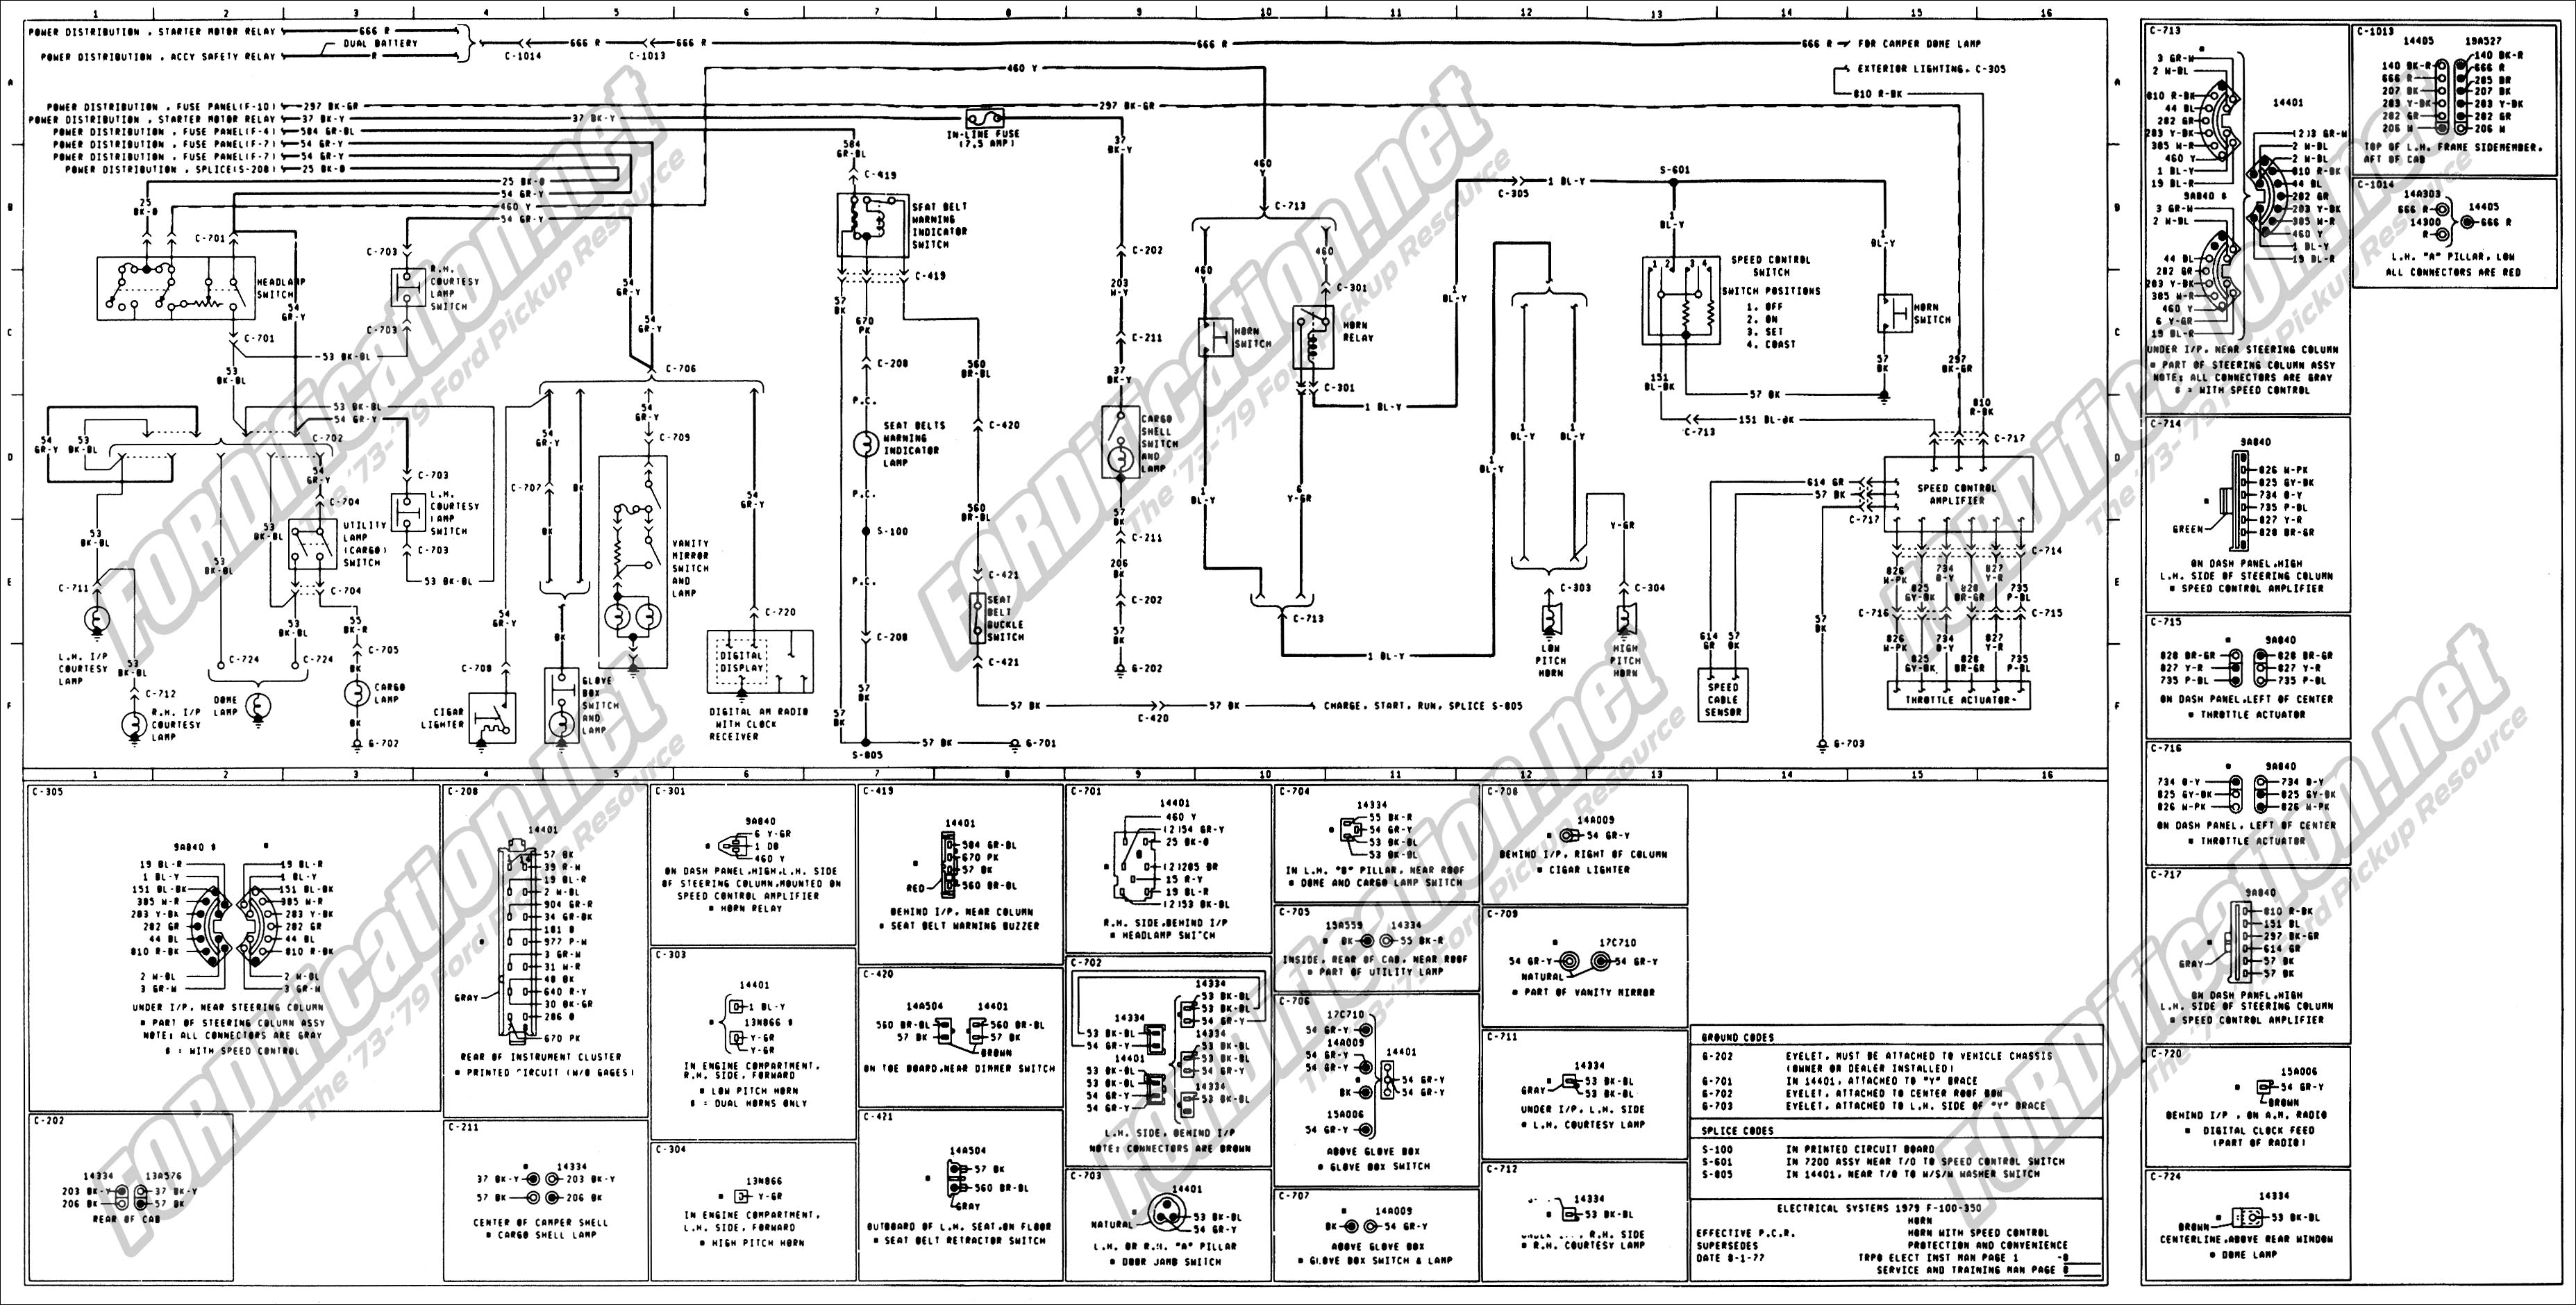 1973 1979 ford truck wiring diagrams schematics fordification net rh fordification net 78 ford headlight switch wiring diagram 78 ford ignition module wiring diagram